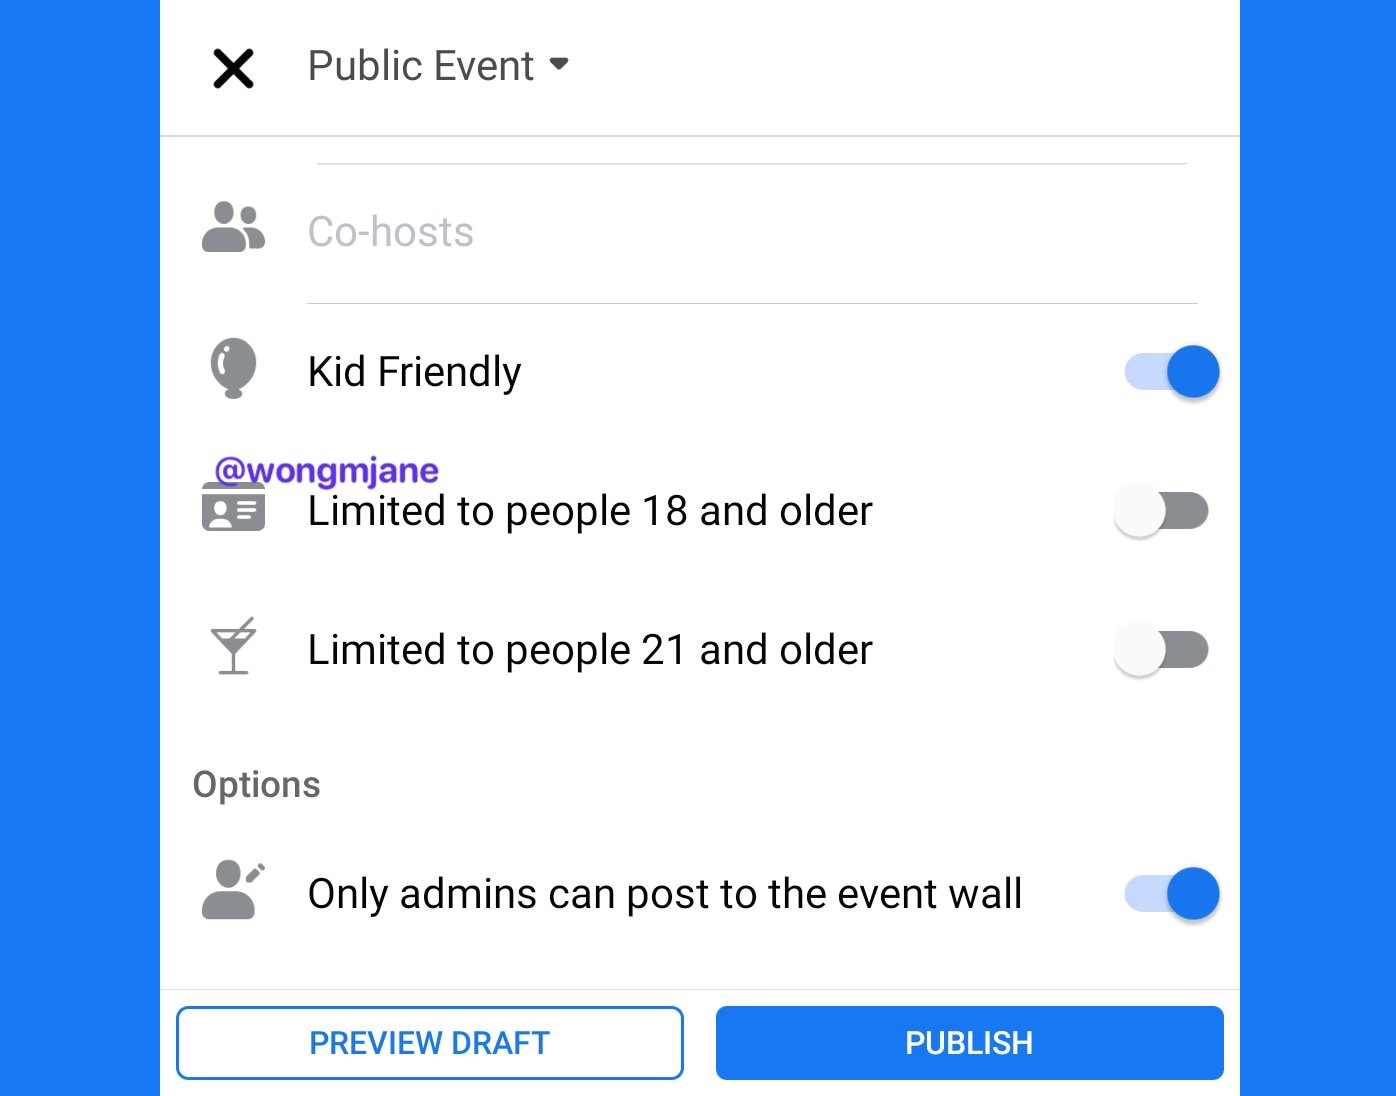 Facebook is working on Age Restrictions / Kid Friendly settings for Public Events